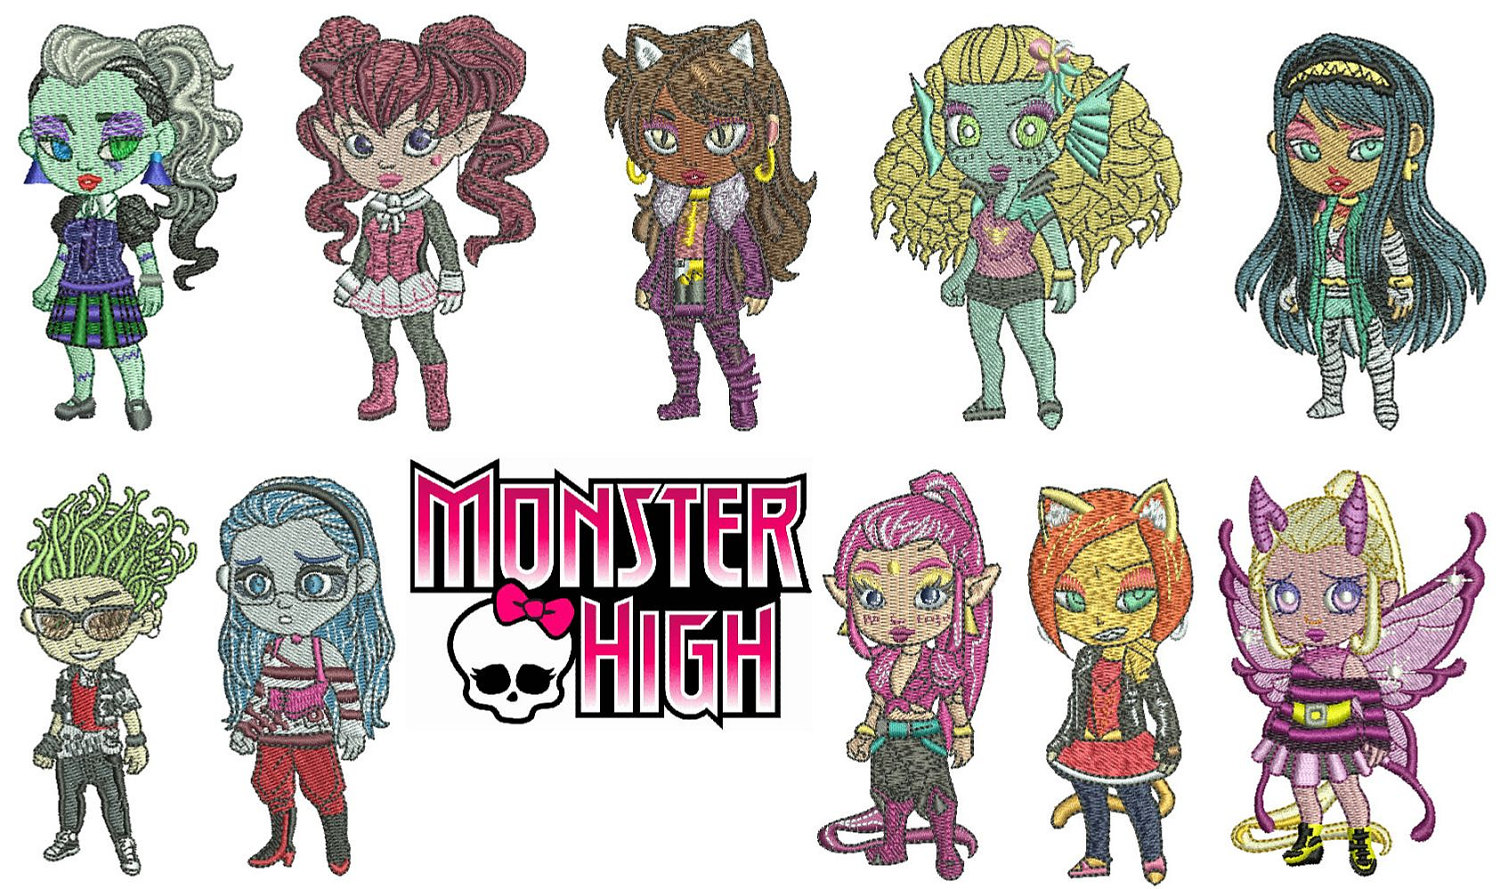 Monster high coloring pages | The Sun Flower Pages | 889x1500